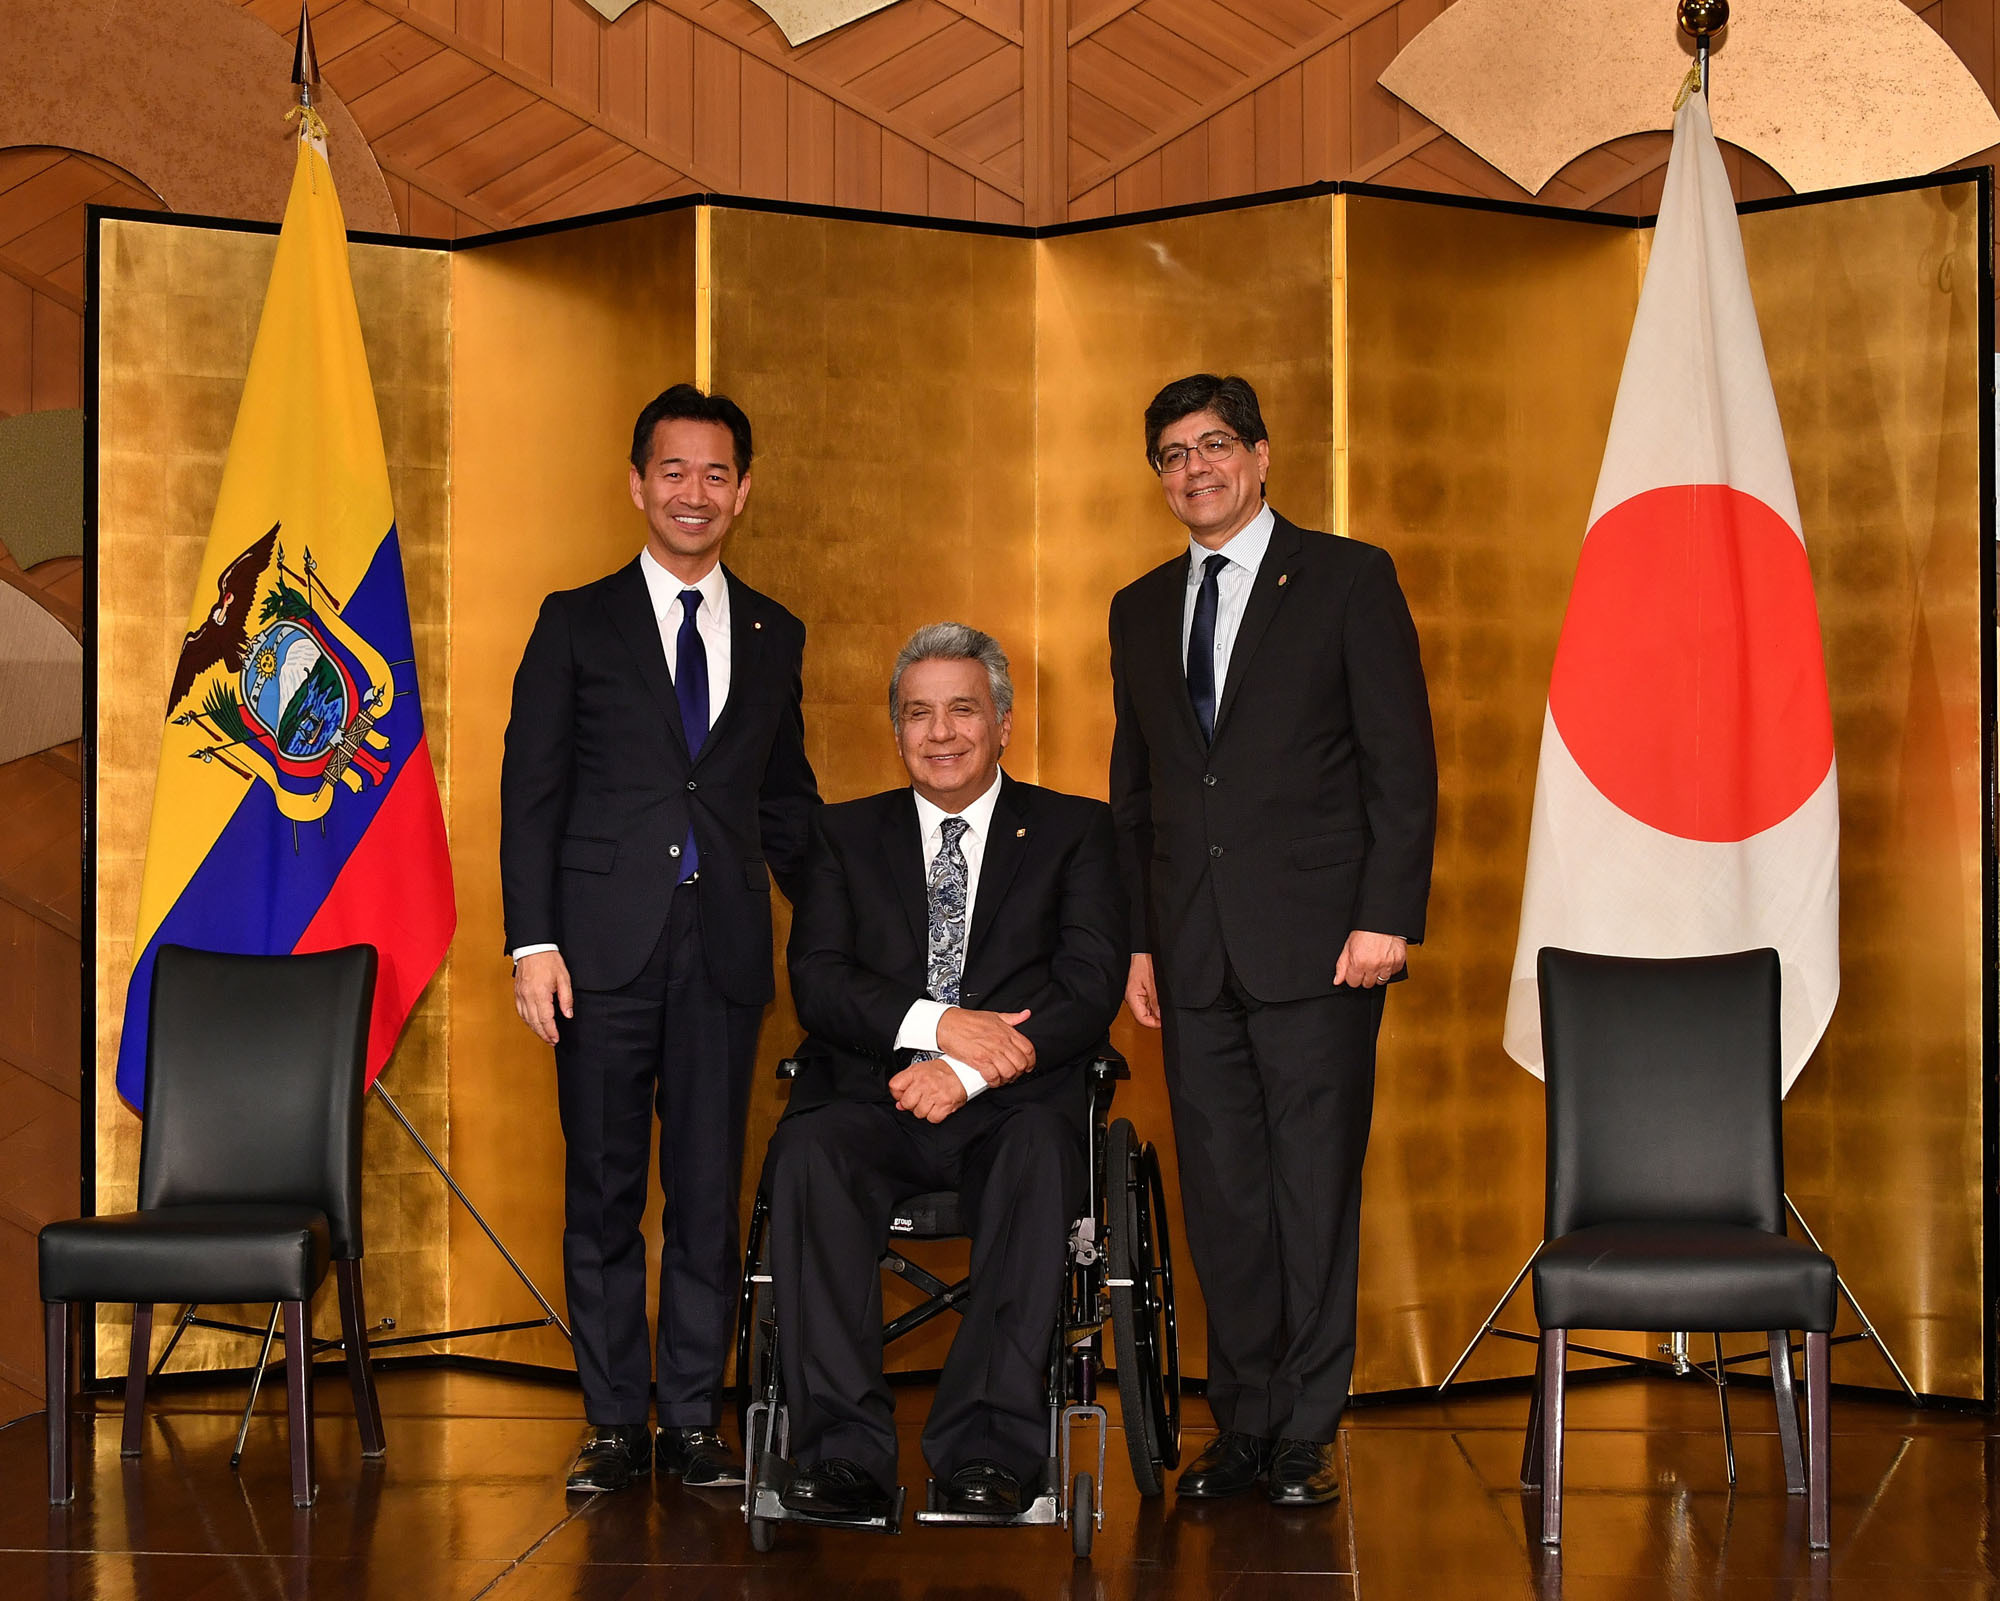 Ecuadorian President Lenin Moreno Garces (center) poses for a photo with Mitsunari Okamoto (left), parliamentary vice-minister for foreign affairs, and Jose Valencia, minister for foreign affairs and human mobility of Ecuador, during a reception to celebrate the 100th anniversary of the establishment of diplomatic relations between Ecuador and Japan at Hotel New Otani in Tokyo on Sept. 6. |  YOSHIAKI MIURA